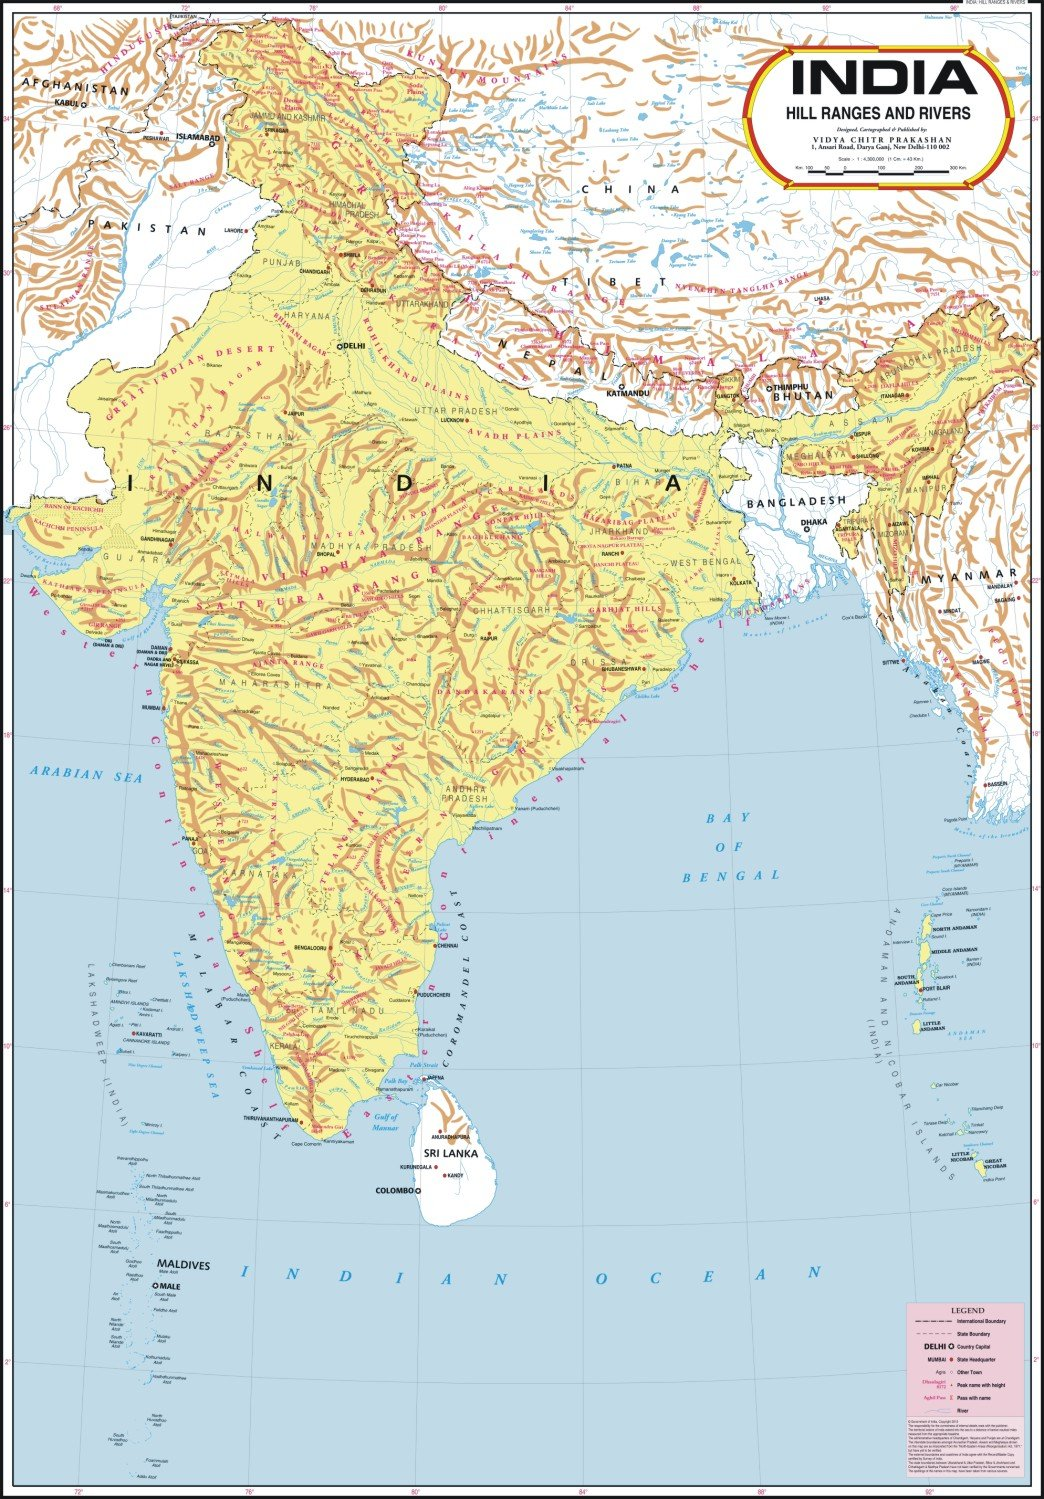 Buy India Hill Ranges & Rivers Map Book Online at Low Prices ... on map of mauritius rivers, india outline map with rivers, map of japan, map of italy rivers, map of brahmaputra river, map of indiana rivers, map of usa rivers, map of algeria rivers, us map w rivers, map of the godavari river, map of yemen rivers, map of rivers in colombia, map of asia, map of south korea rivers, map of southeast us rivers, map of european countries and rivers, map of the main rivers, map of laos rivers, map of england with rivers and mountains,